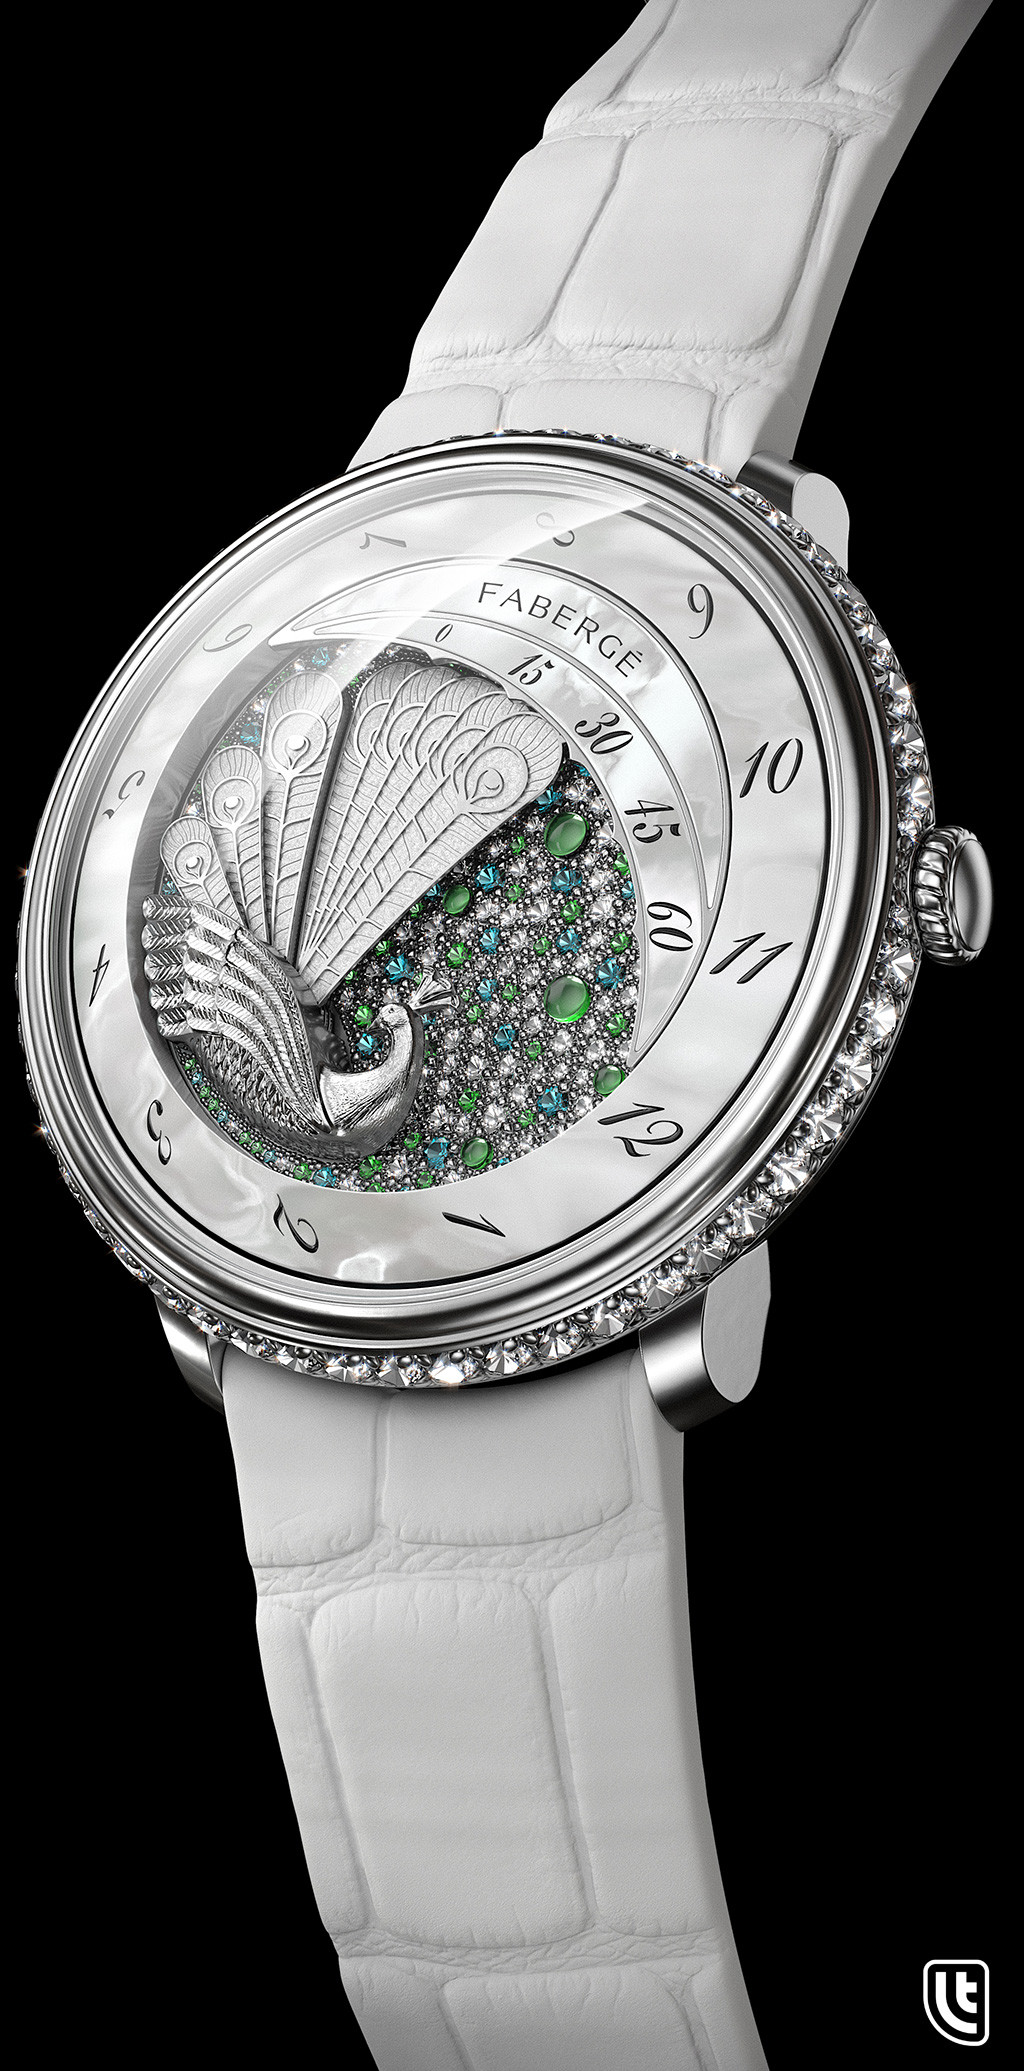 David letondor peacock winter faberge david letondor v2